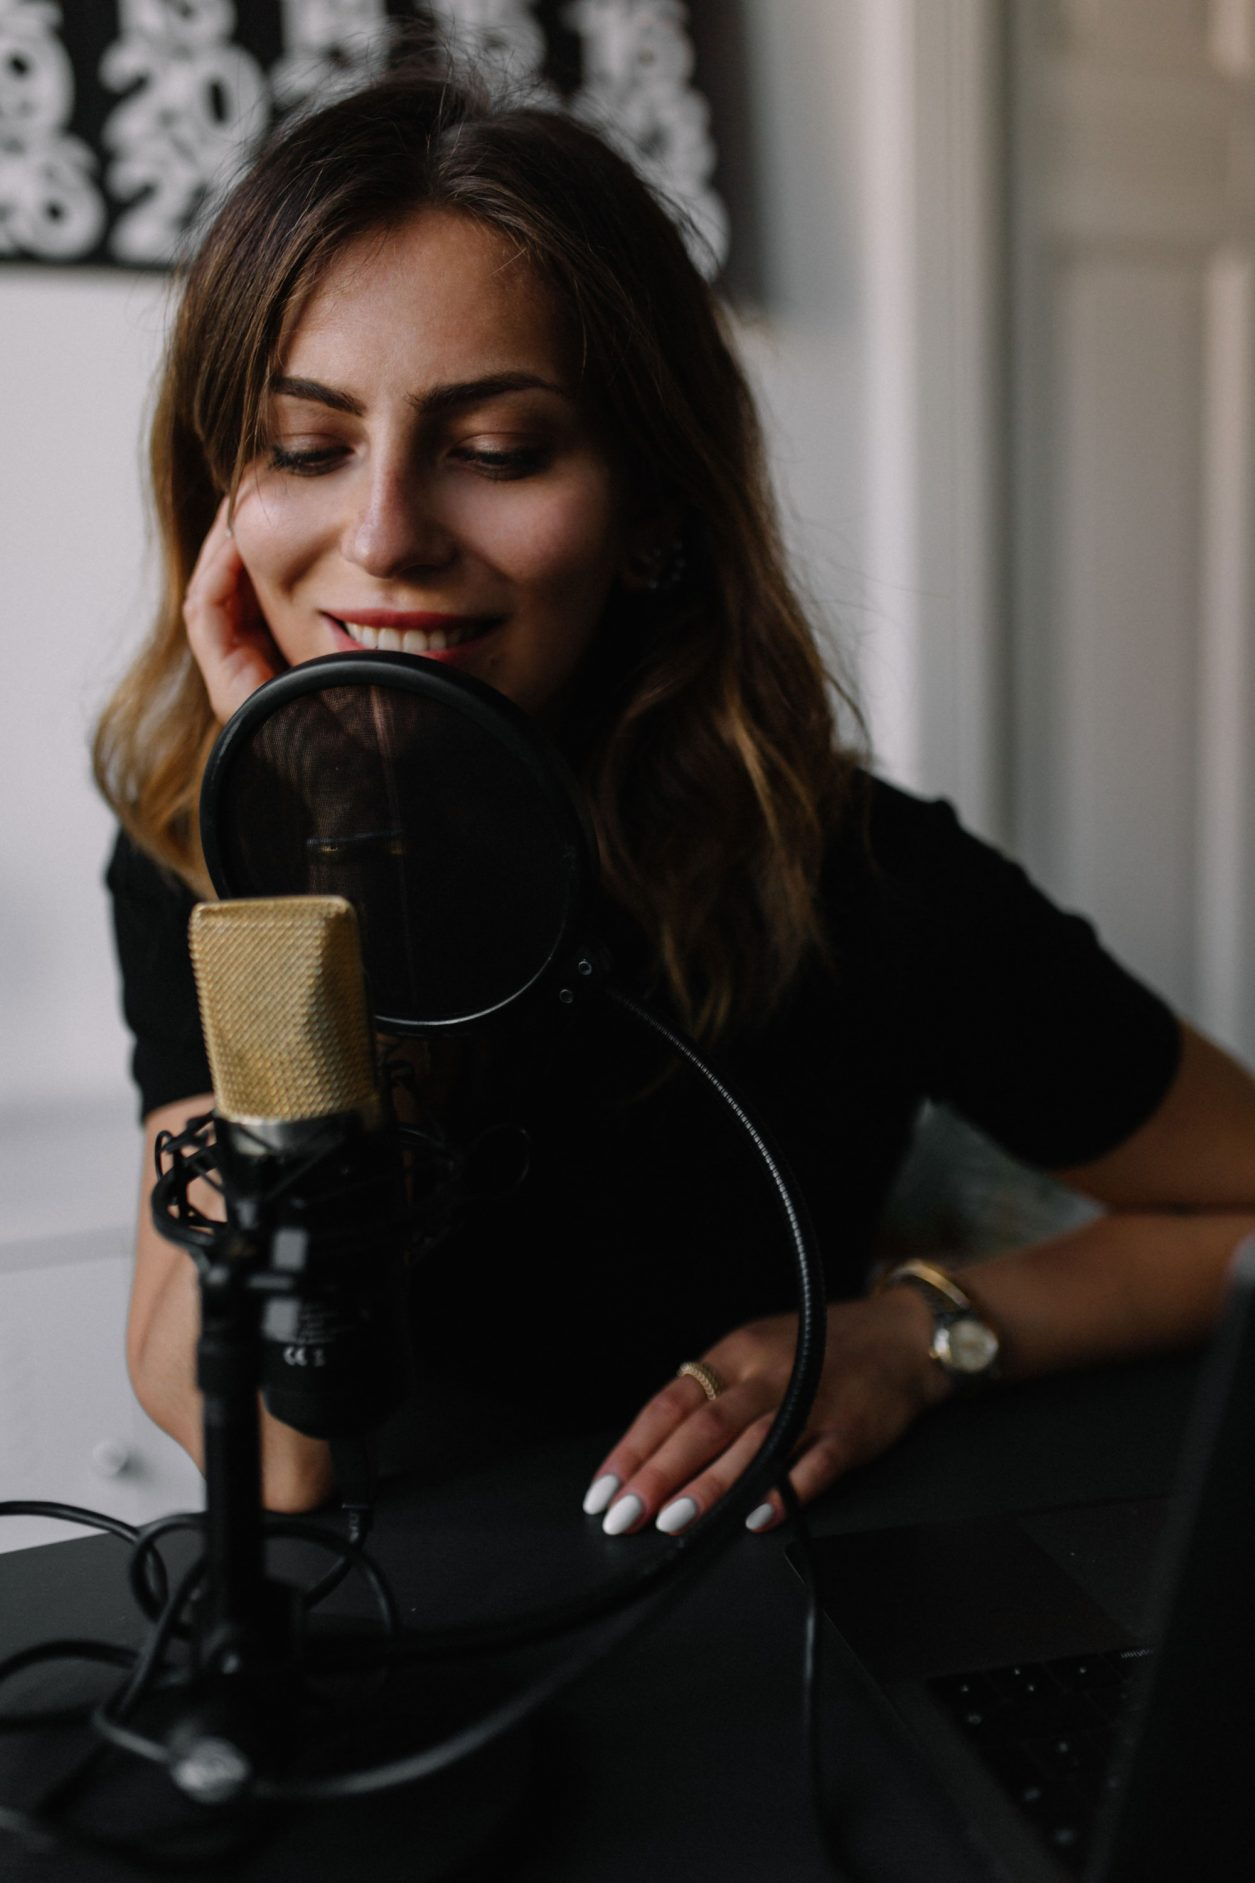 How to start a podcast -  tips by Masha Sedgwick, fashion blogger from Berlin, Germany. Woman with mike